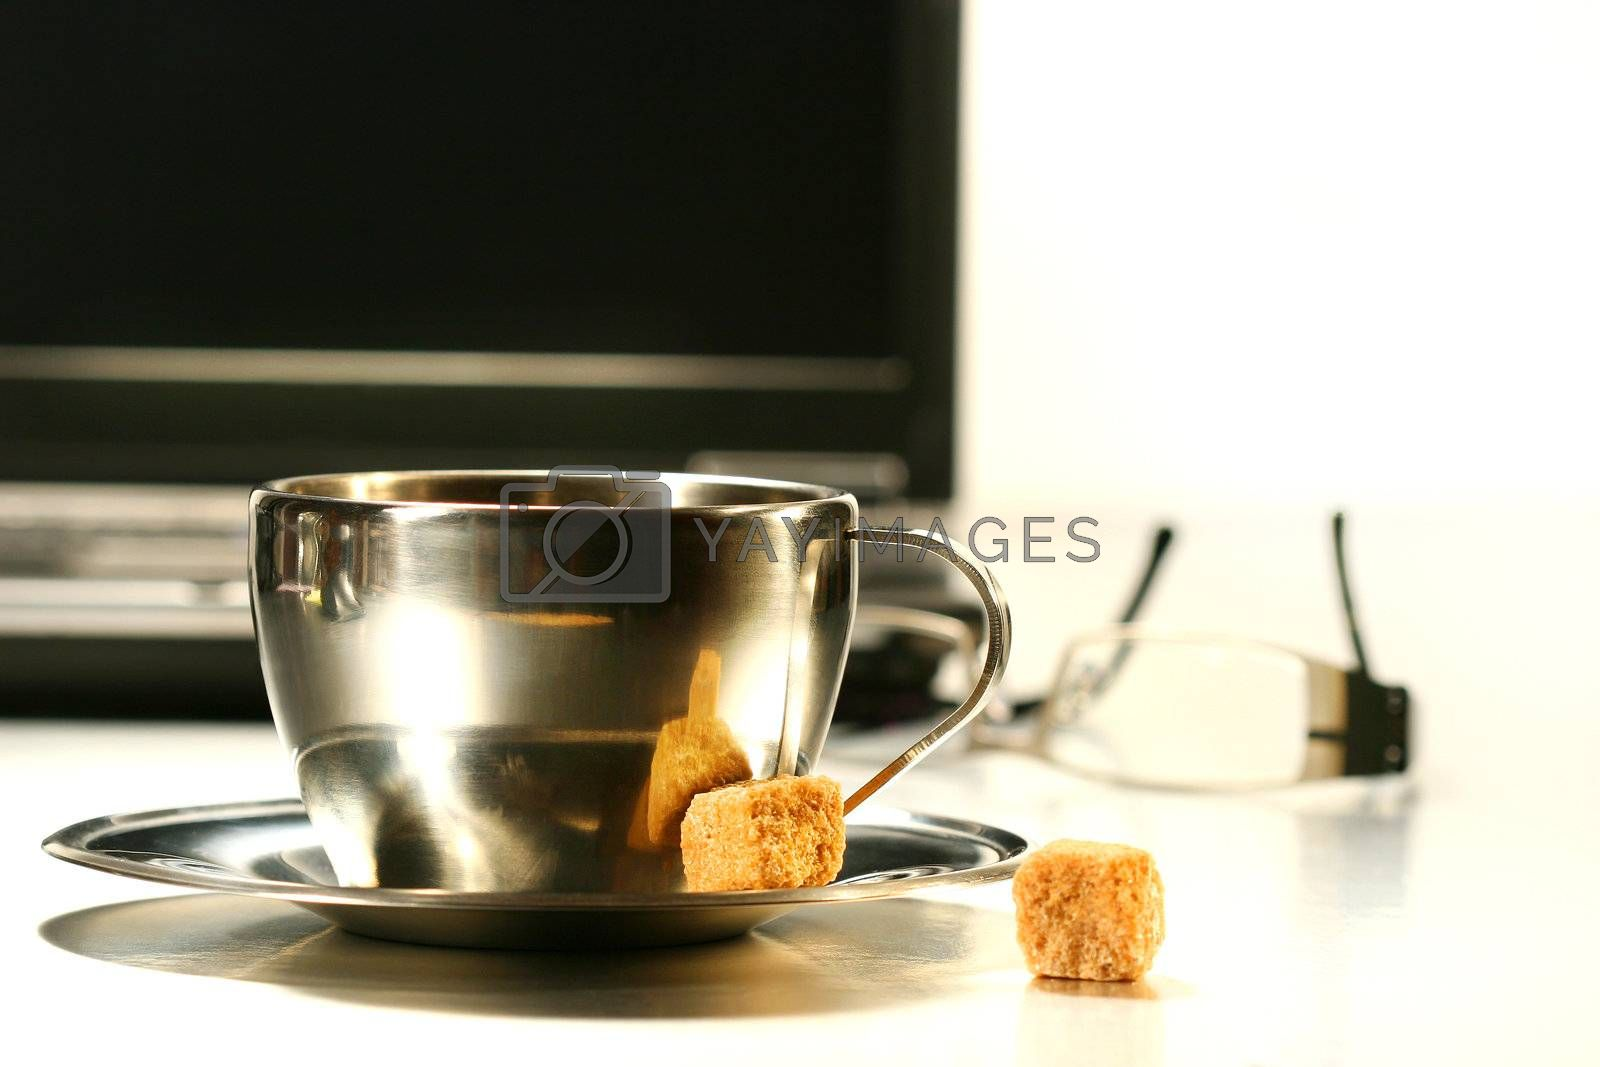 Stainless steel coffee cup with laptop in background